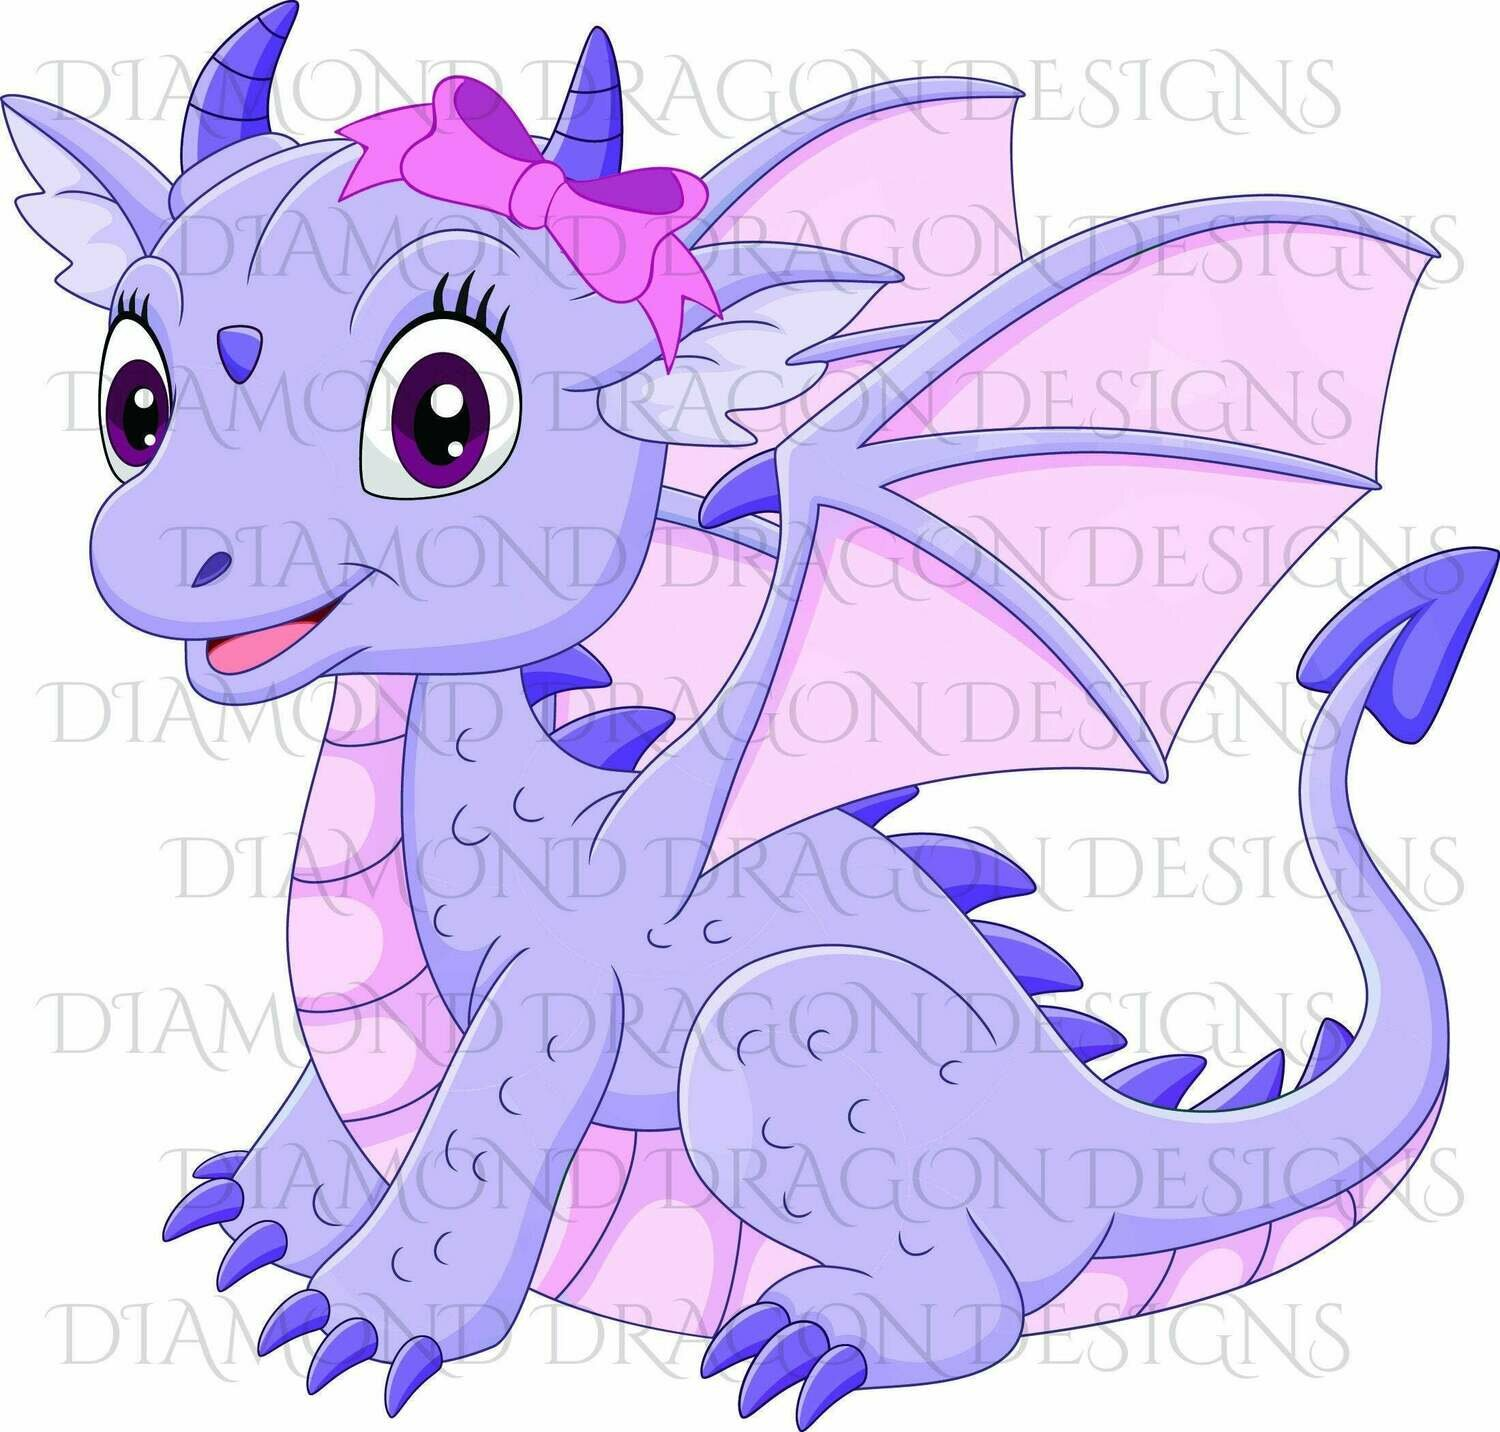 Kids - Cute Girl Dragon, Baby Dragon, Cute Little Girl Dragon, Purple Pink Bow, Digital Image